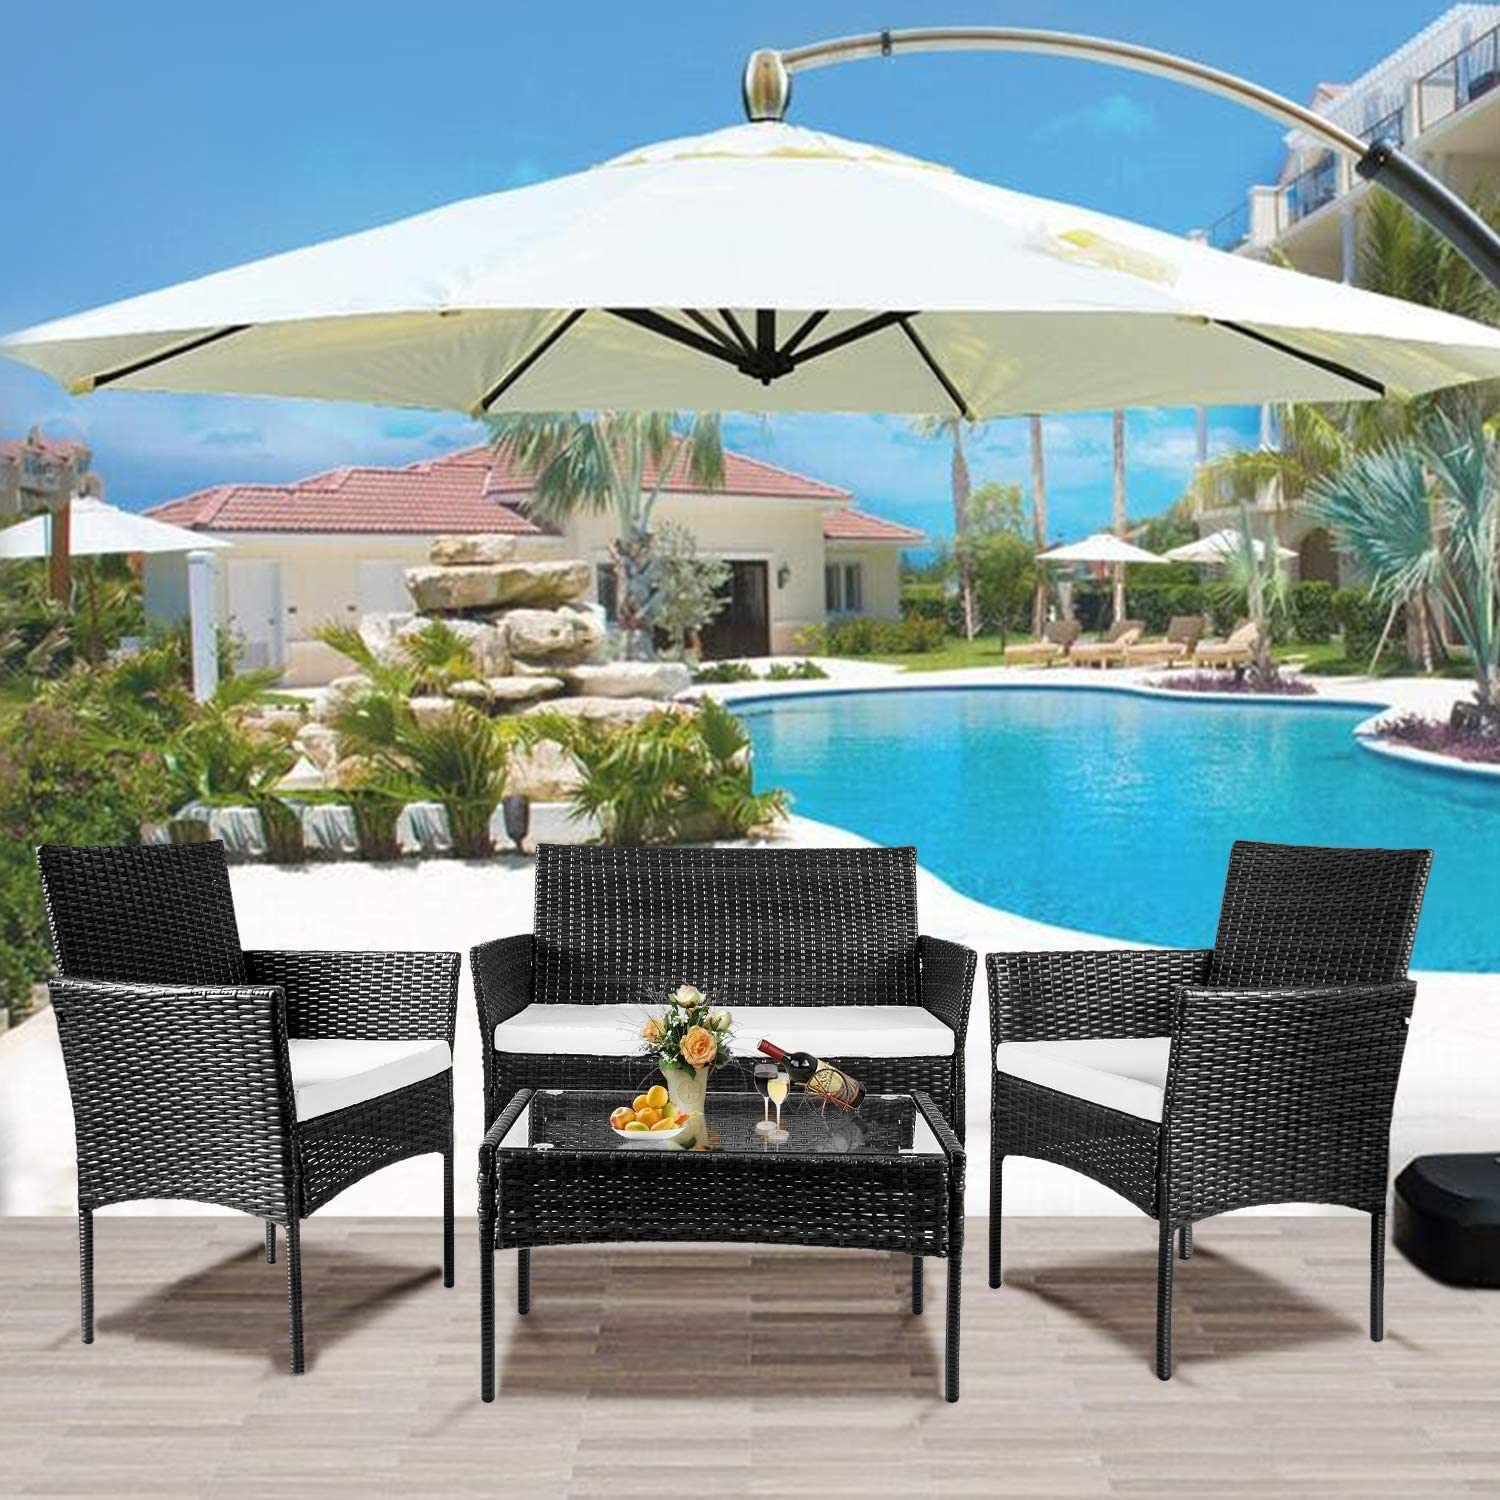 nozama Rattan 4 Piece Outdoor Furniture Backyard Conversation Set for Garden Rattan Patio Sets with 2 Single Armchairs 1 Loveseat 1 Table (Black)